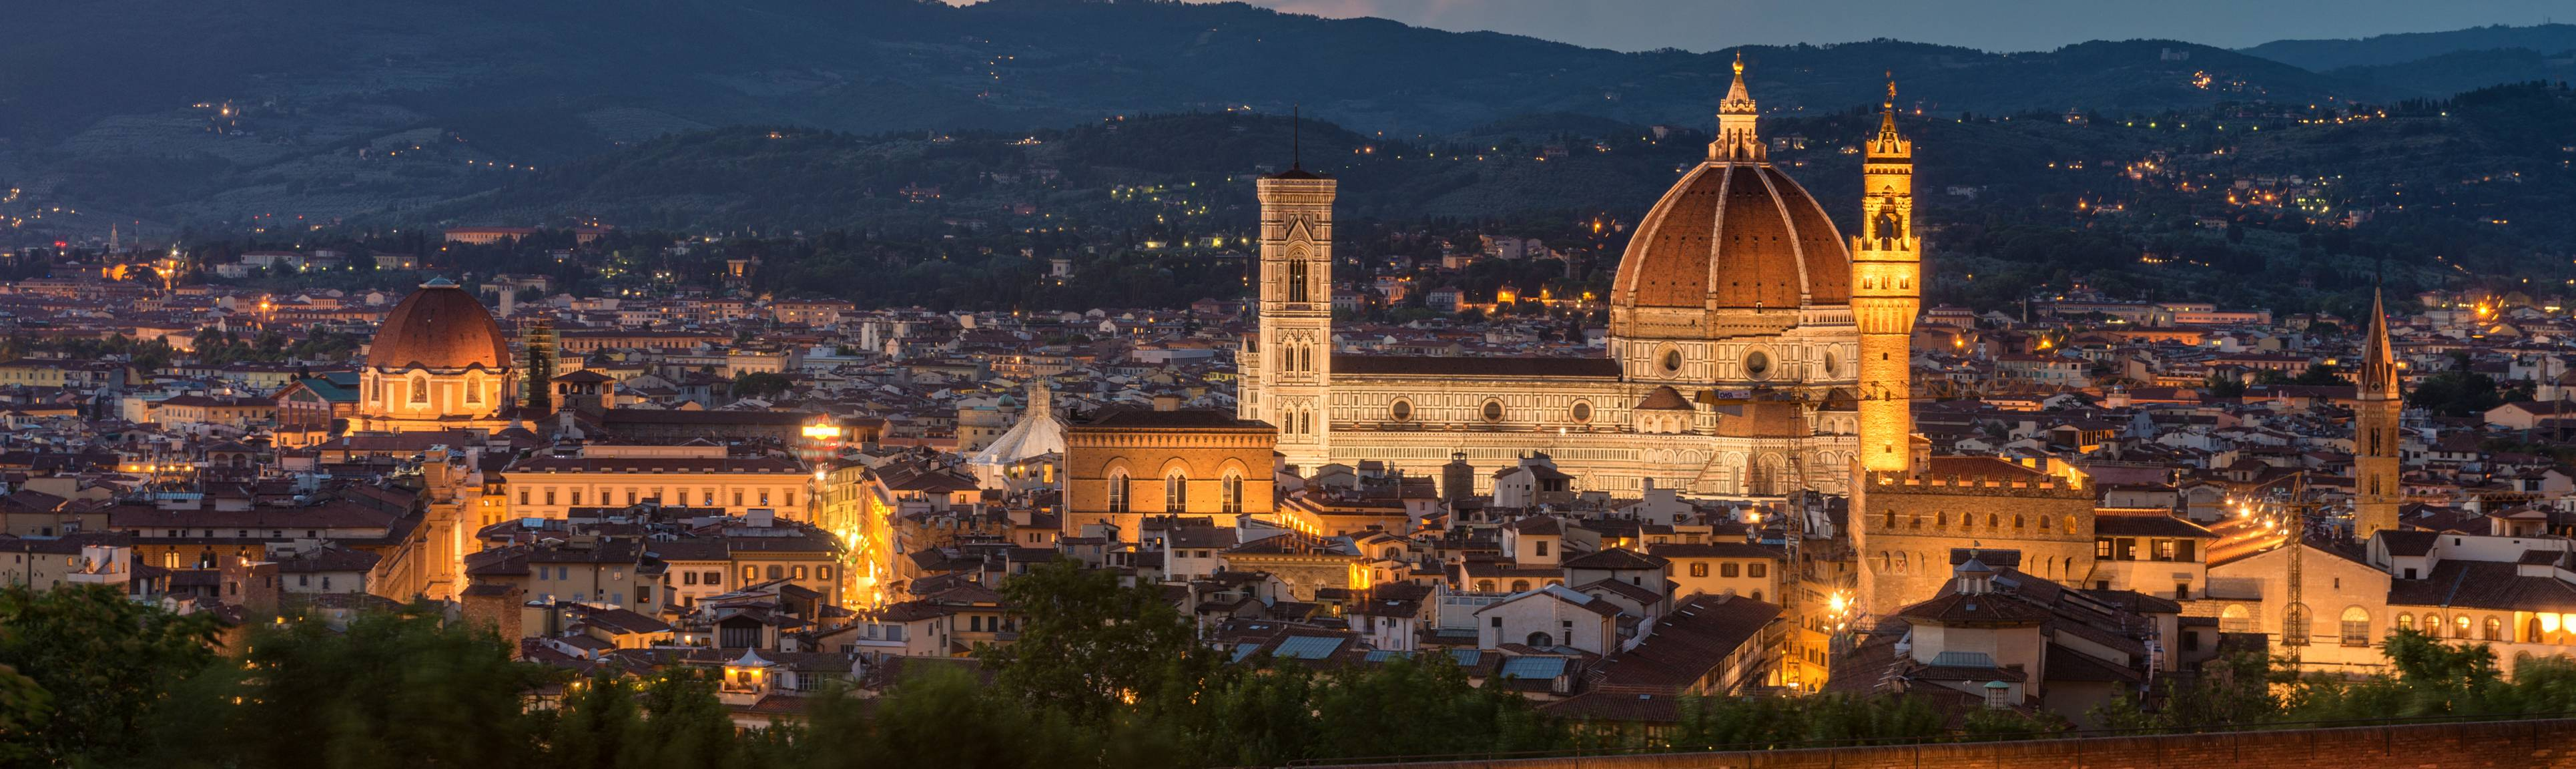 Illuminated night view of the Il Duomo Catheral in Florence